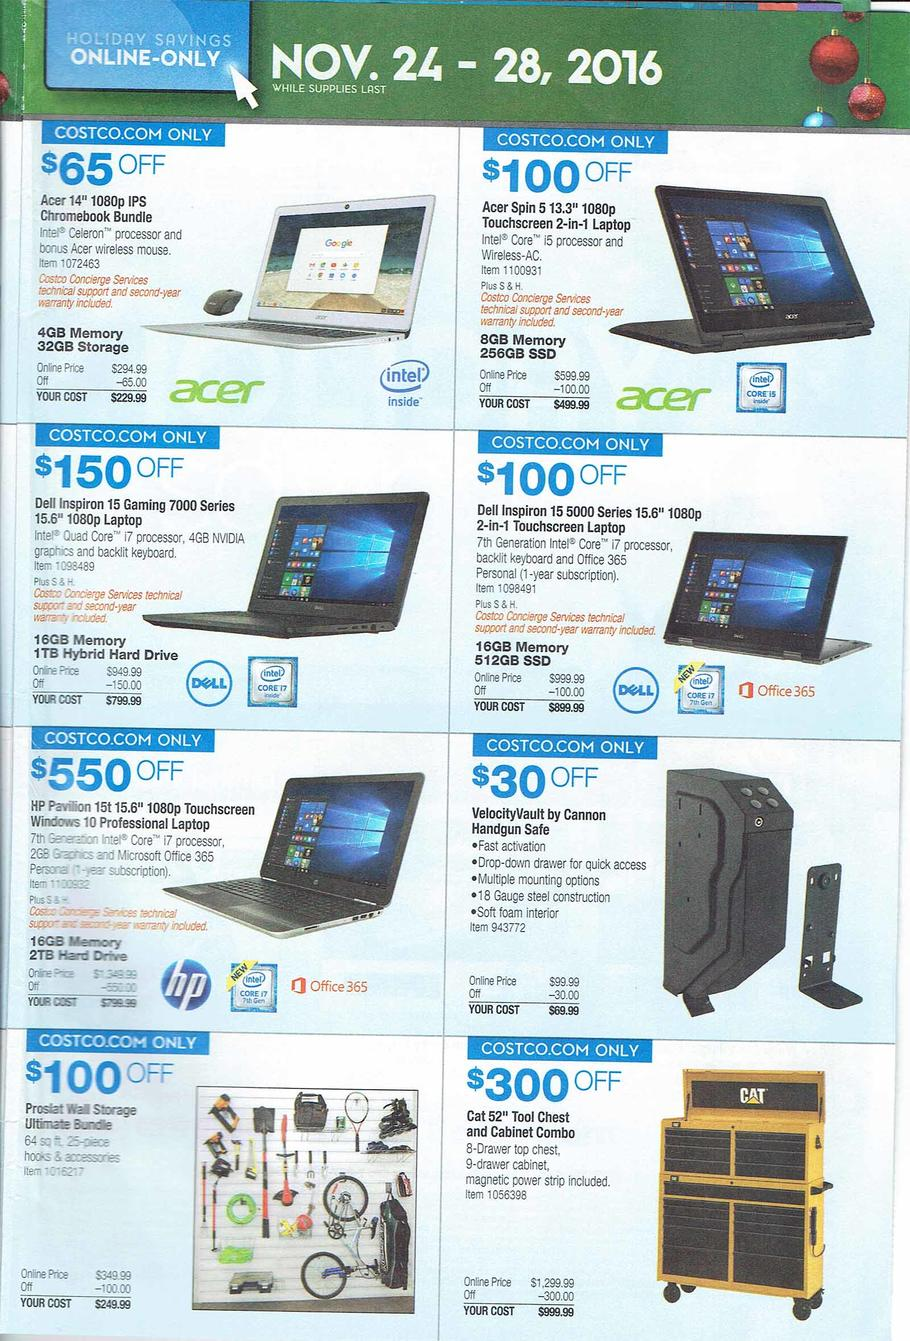 costco-black-friday-2016-ad-p-8